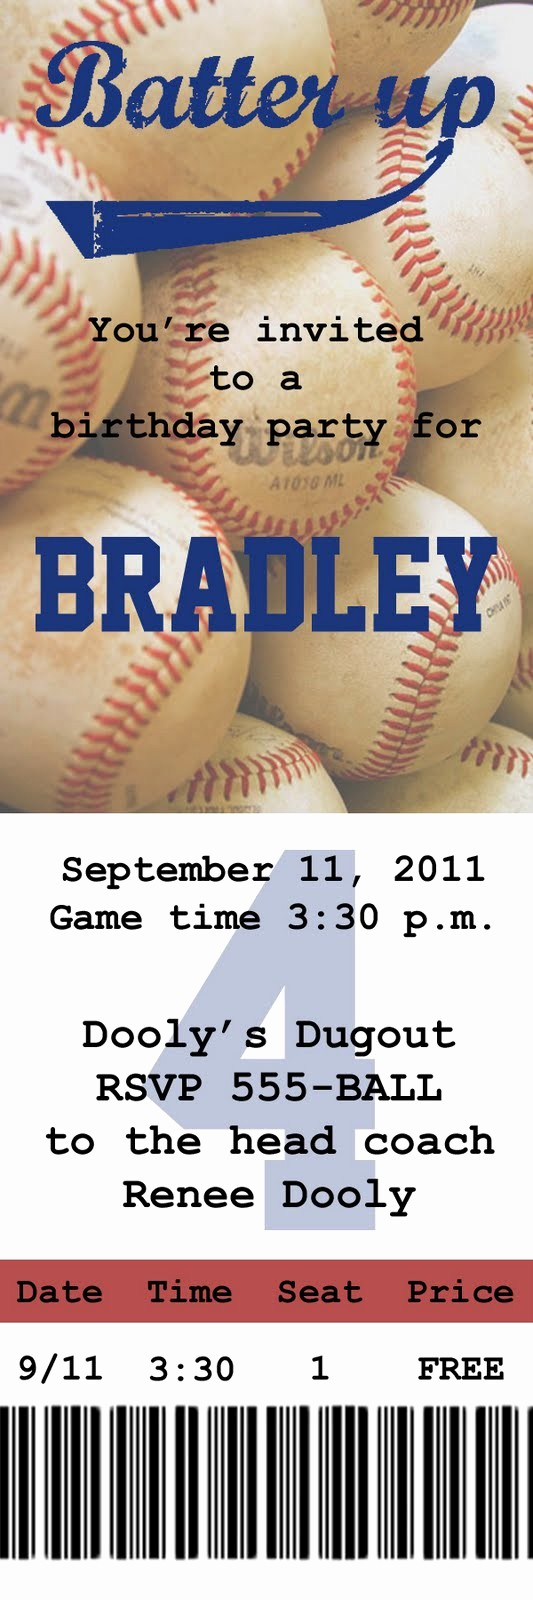 Create Your Own Tickets Free Luxury I Love the Idea Of An Invite Like This to A Baseball Game